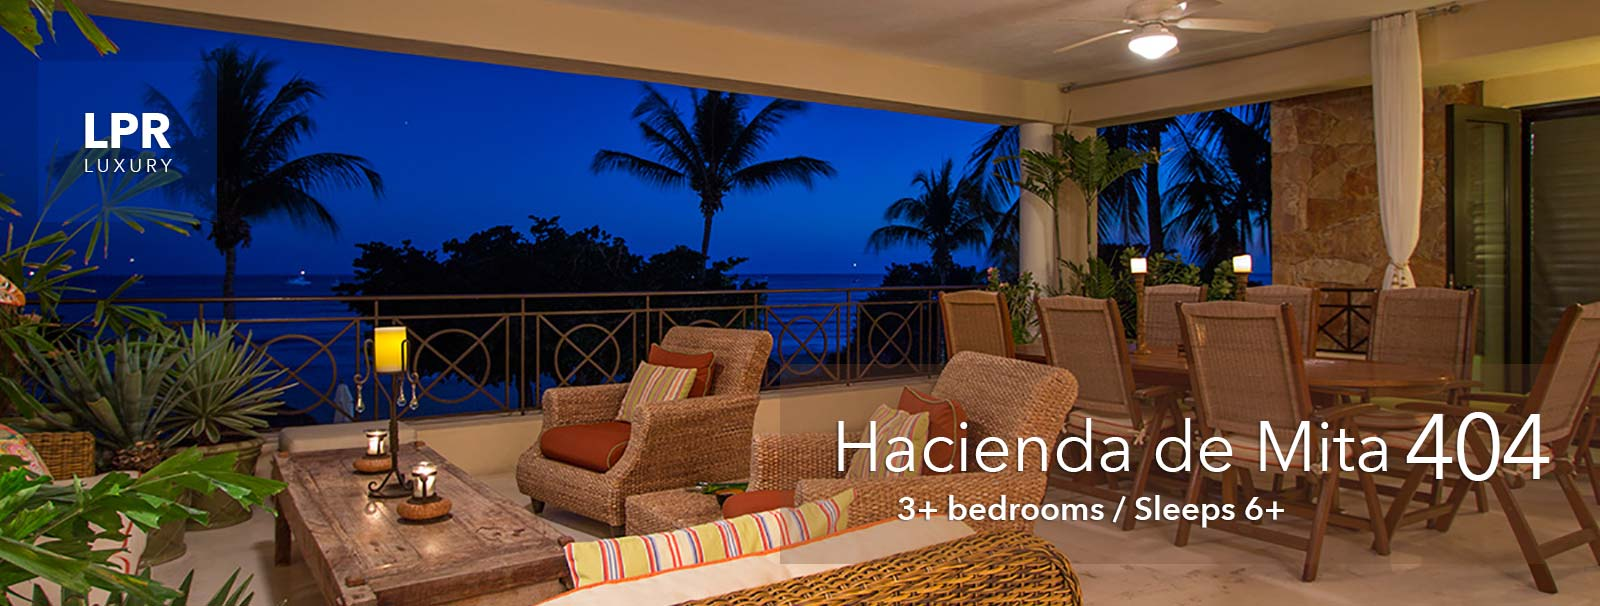 Hacienda de Mita 404 - Punta Mita Resort, Riviera Nayarit, Mexico - Luxury condo for sale